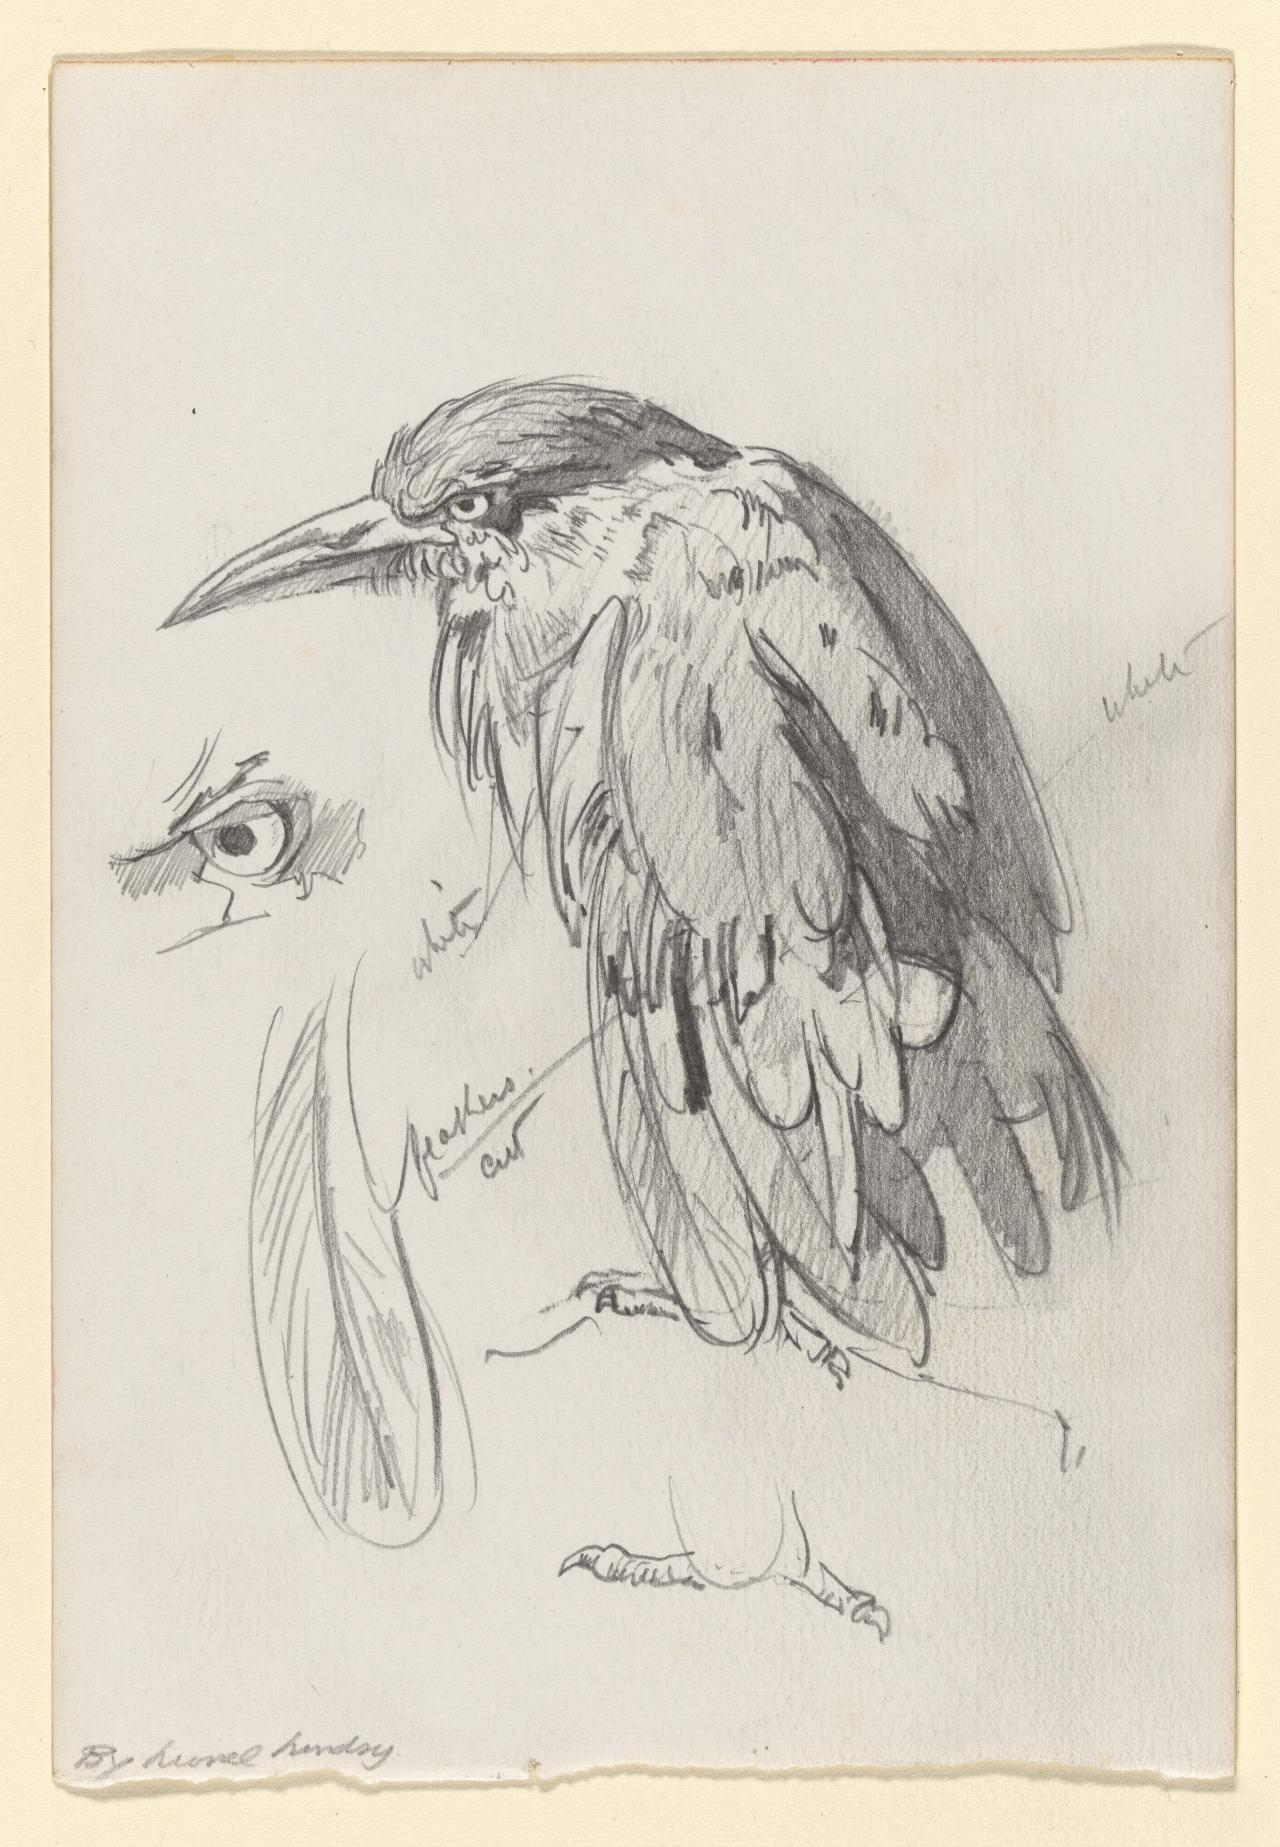 Study for The clipped wing